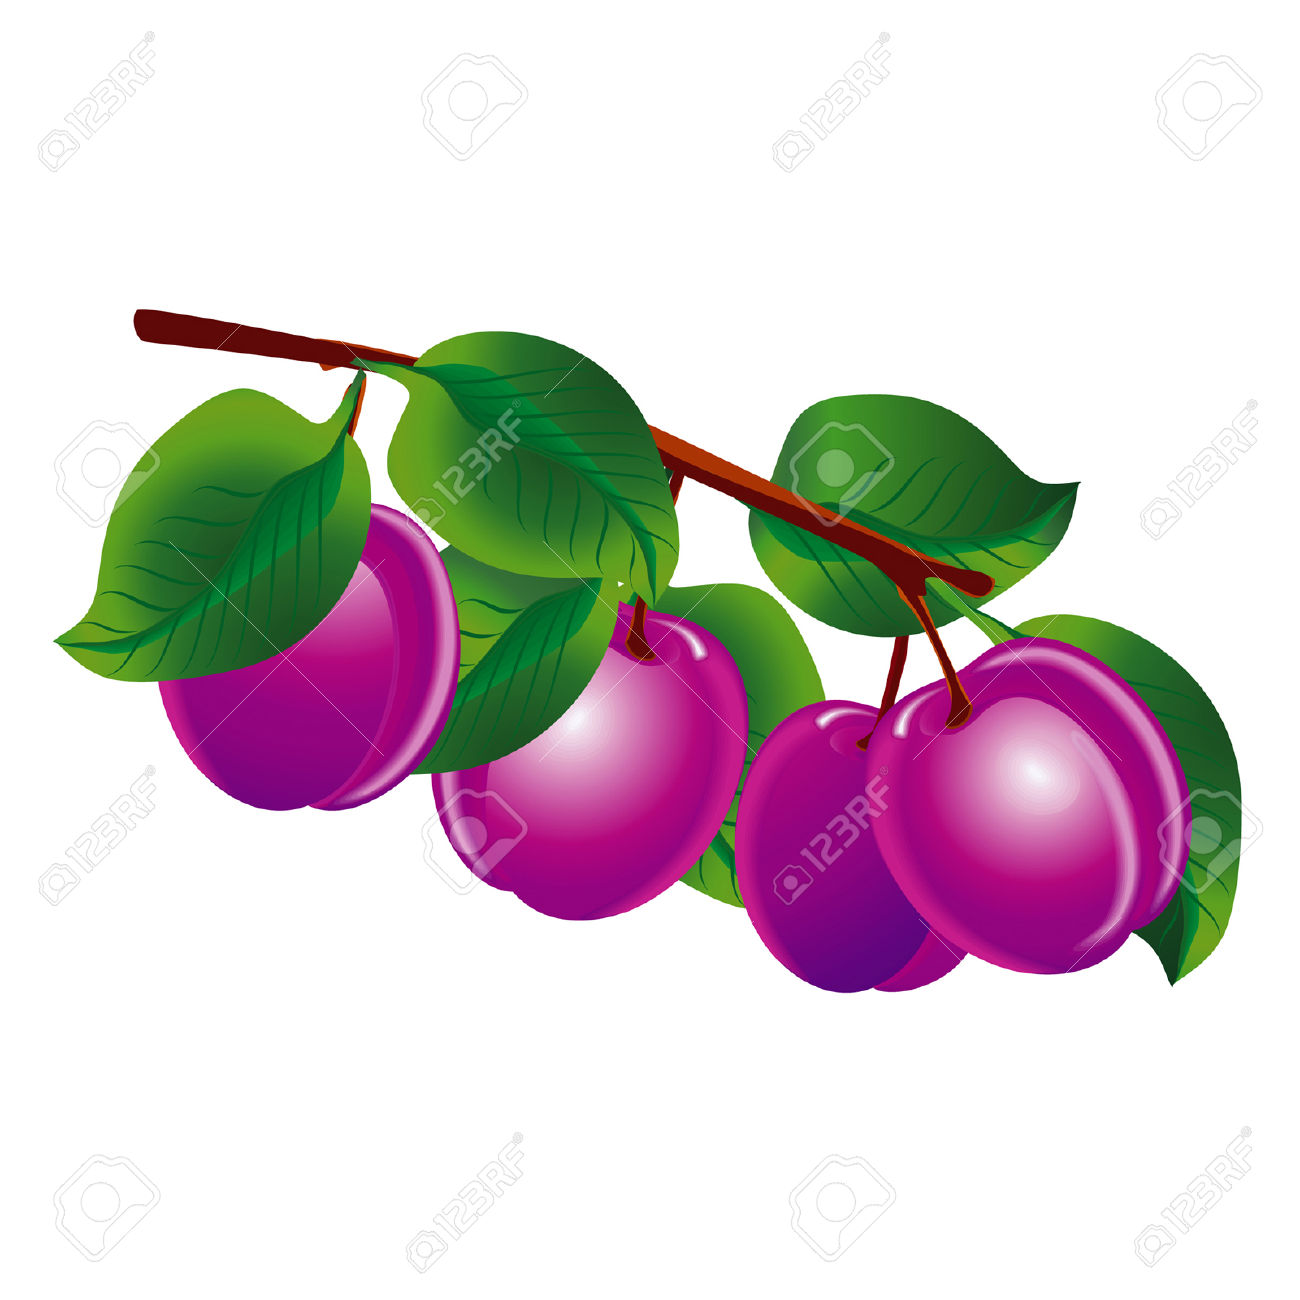 Plum Tree Clip Art.